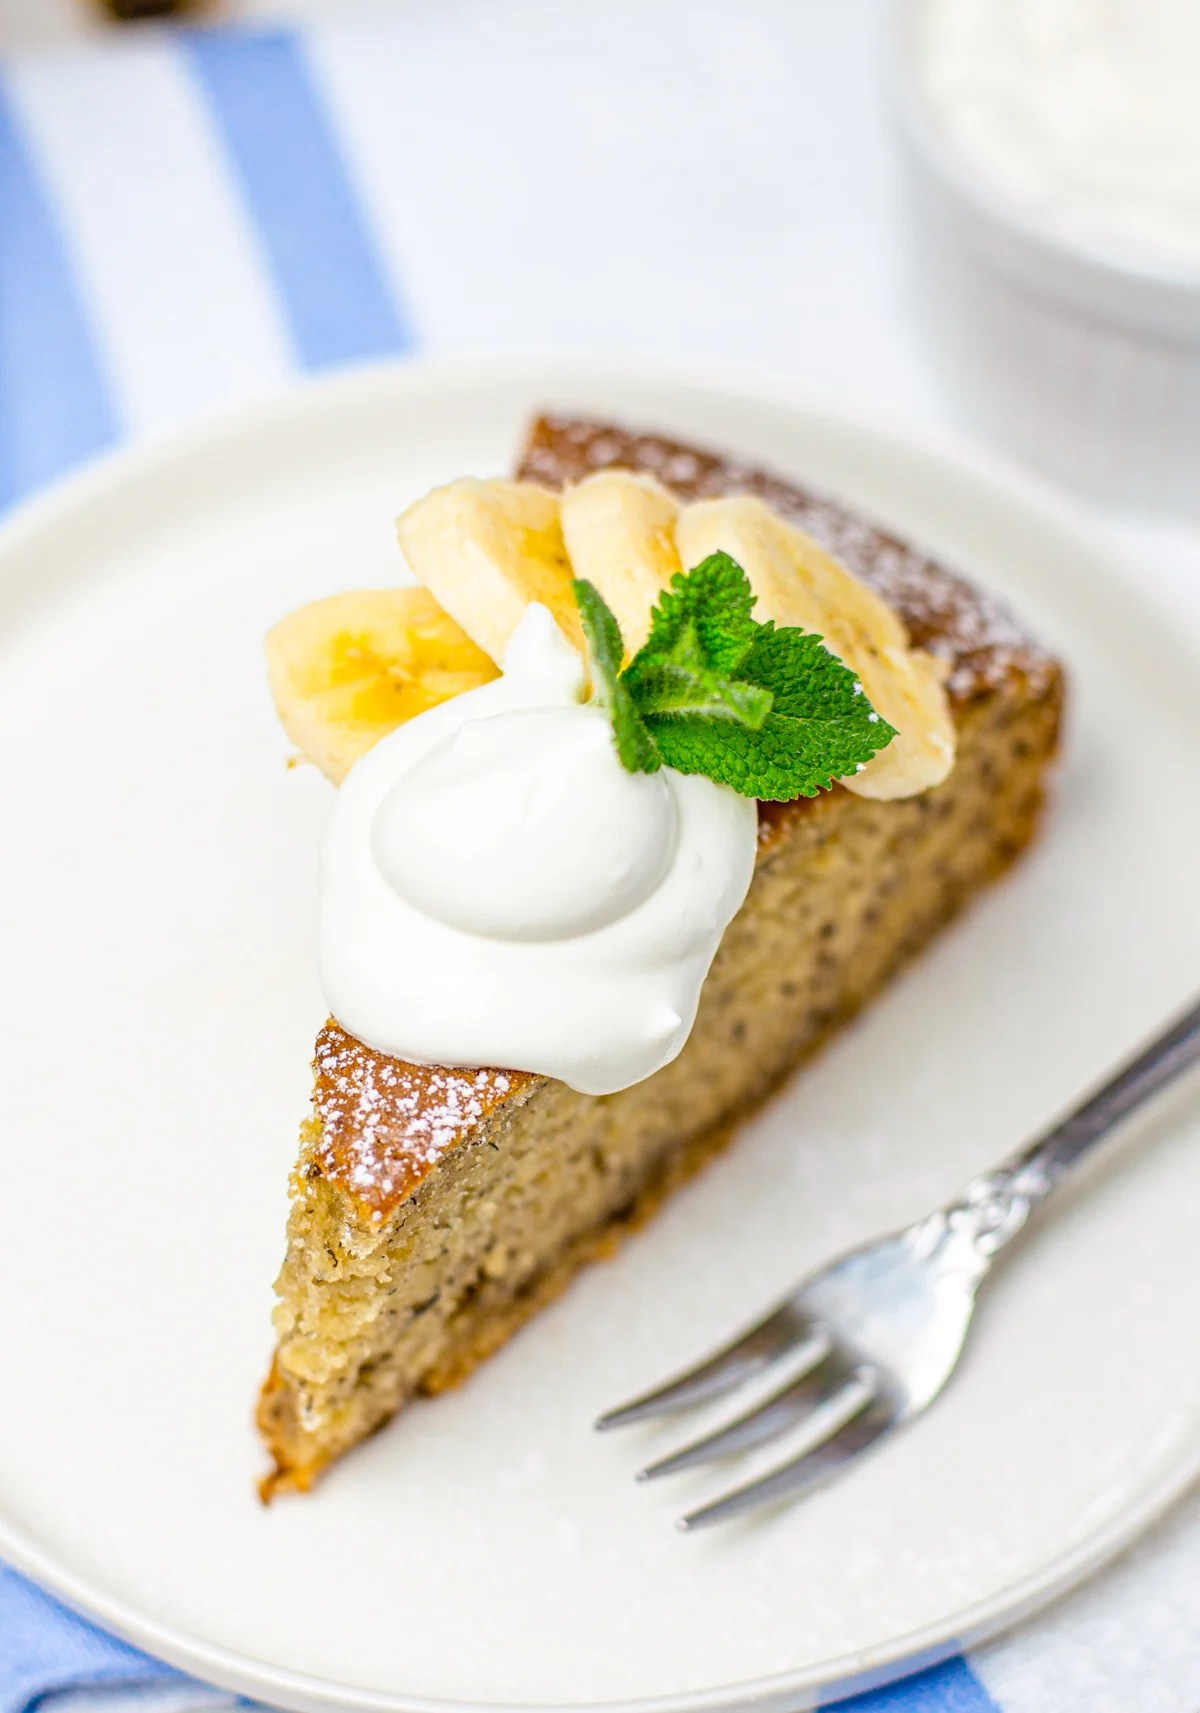 Overhead of a slice of Banana Cake on white plate garnished